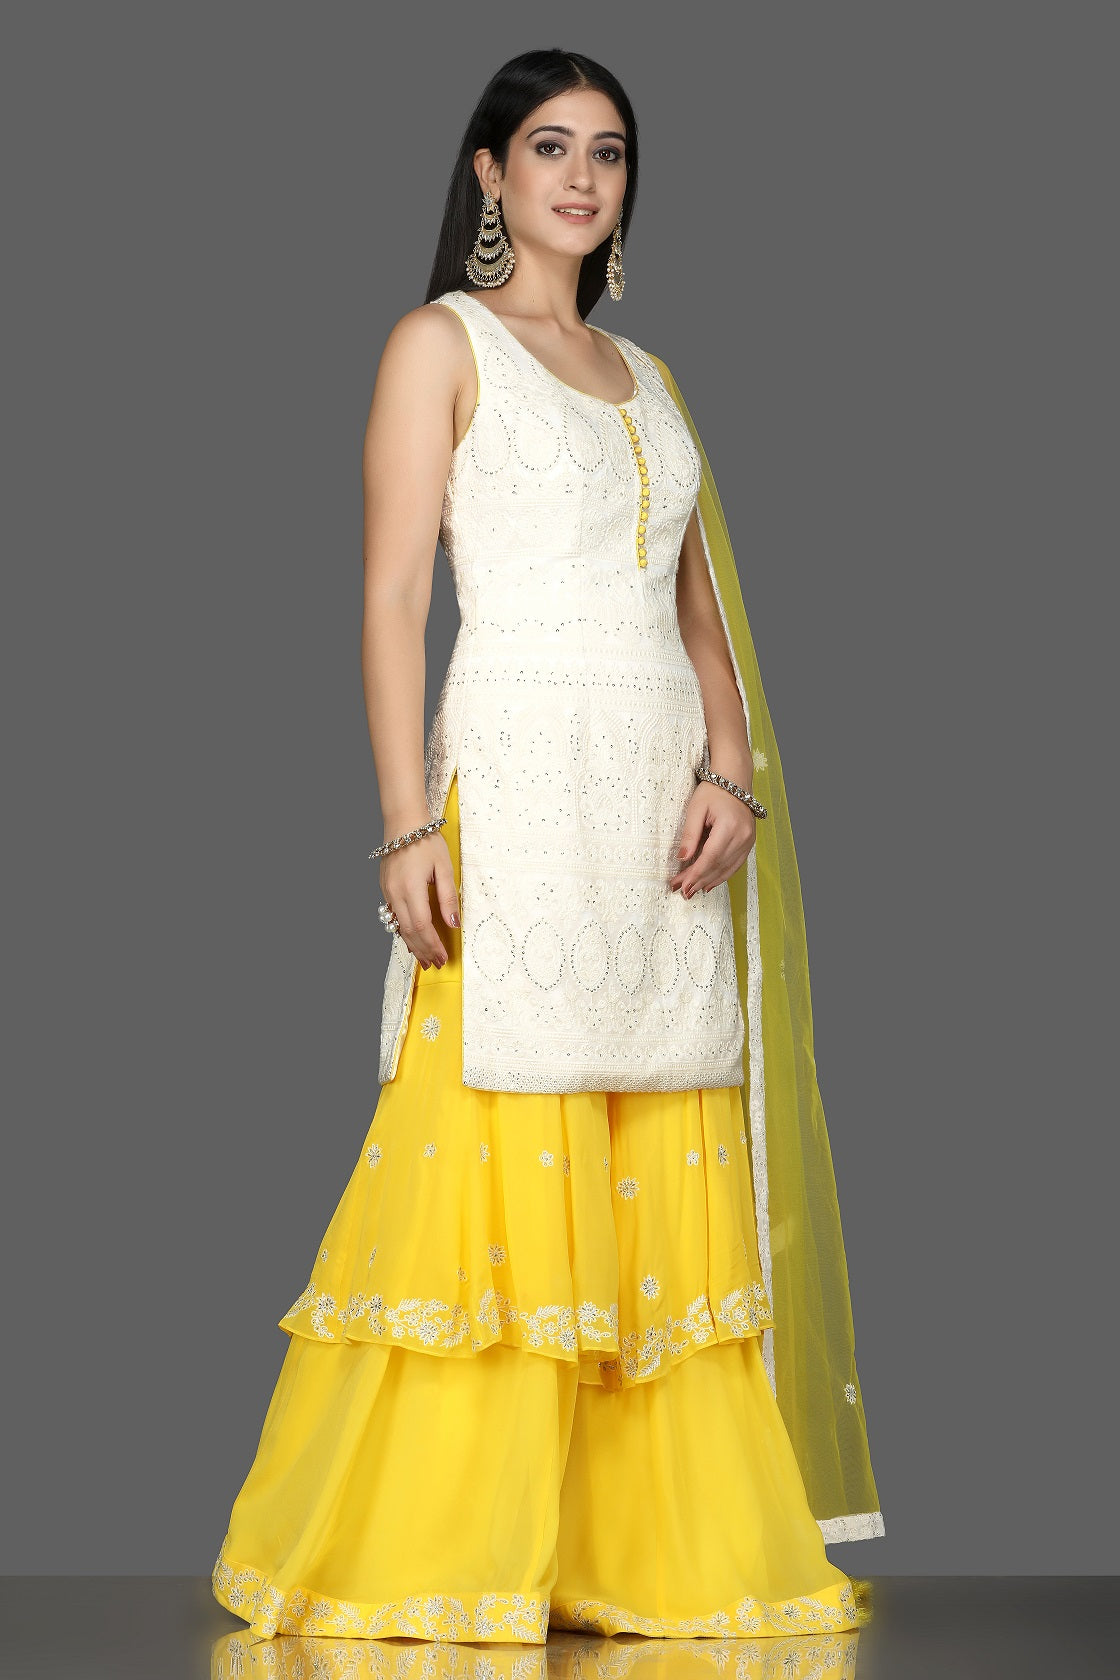 Shop white Lucknowi kurta online in USA with yellow georgette sharara. Flaunt ethnic fashion with exquisite designer lehenga, Indian wedding dresses, Anarkali suits from Pure Elegance Indian fashion boutique in USA.-side